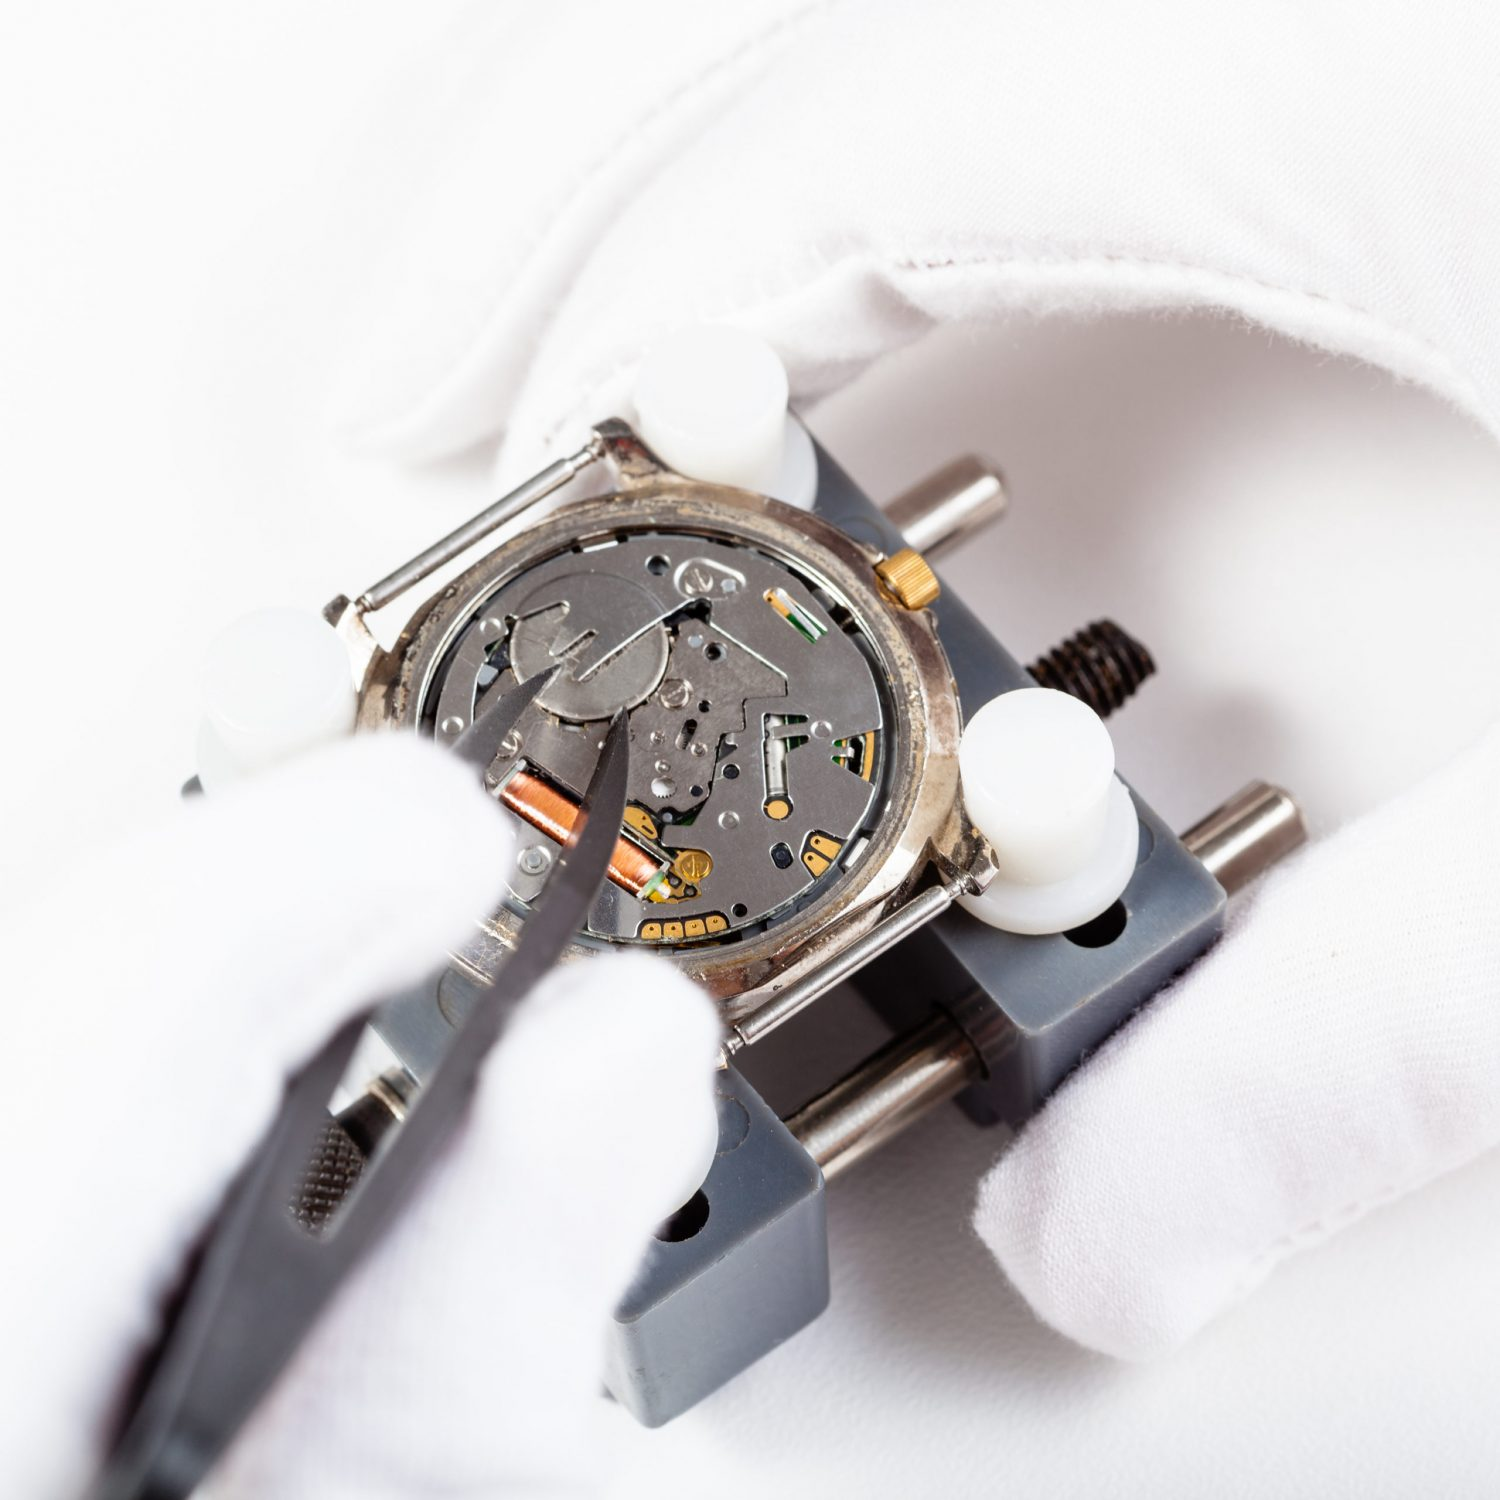 watchmaker workshop - replacing battery in quartz wristwatch close up by tweezers on white background